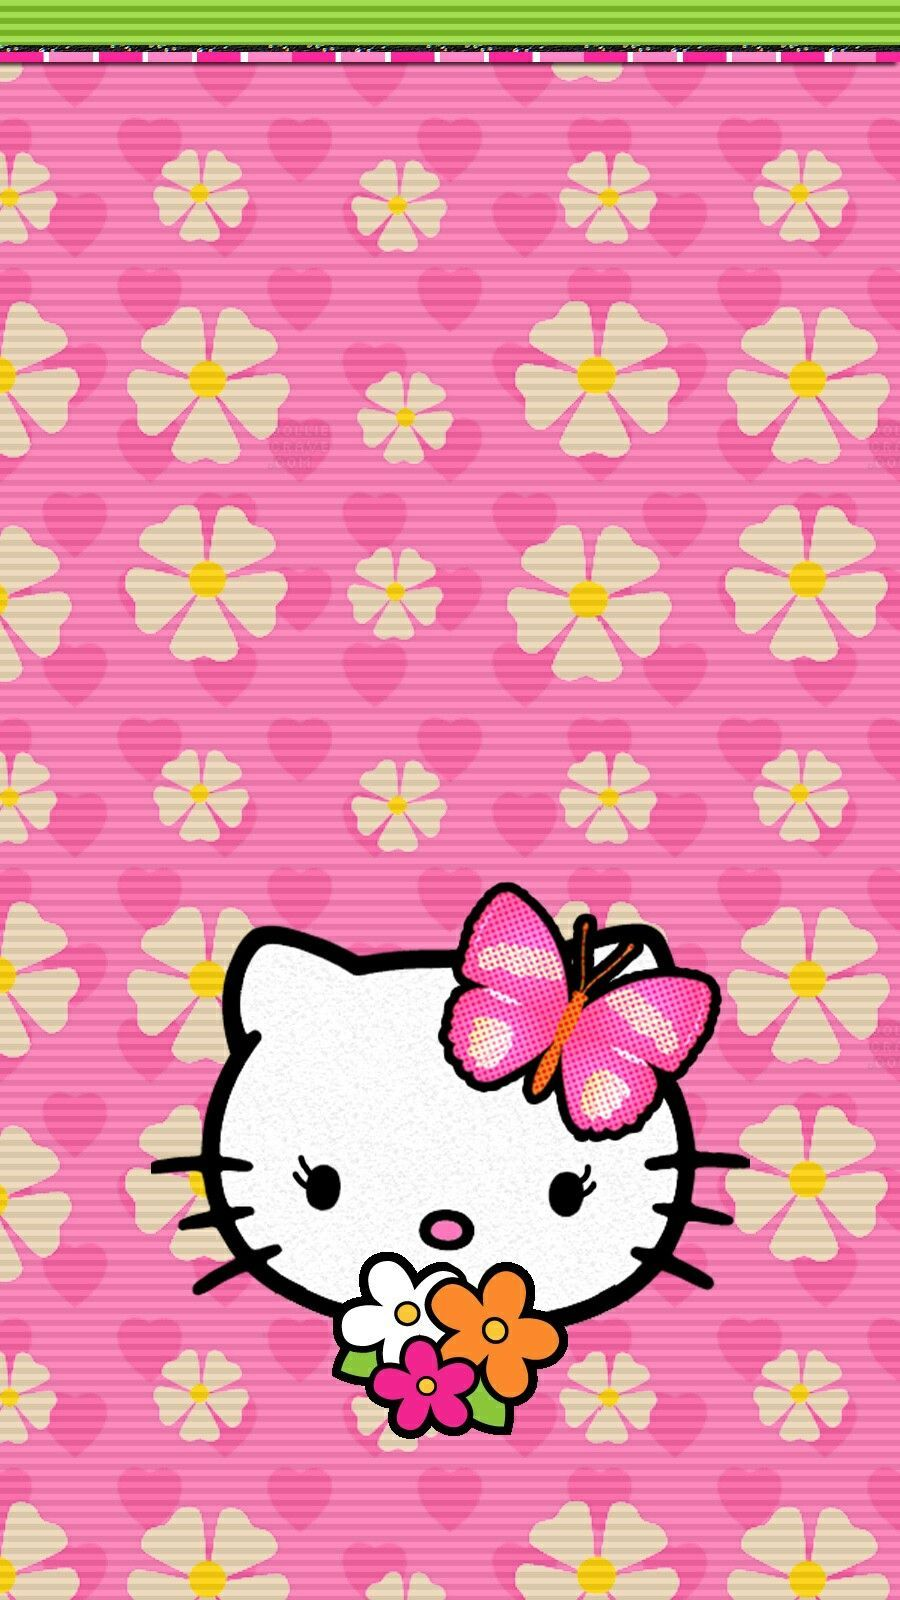 Spring Cat Iphone Wallpapers Top Free Spring Cat Iphone